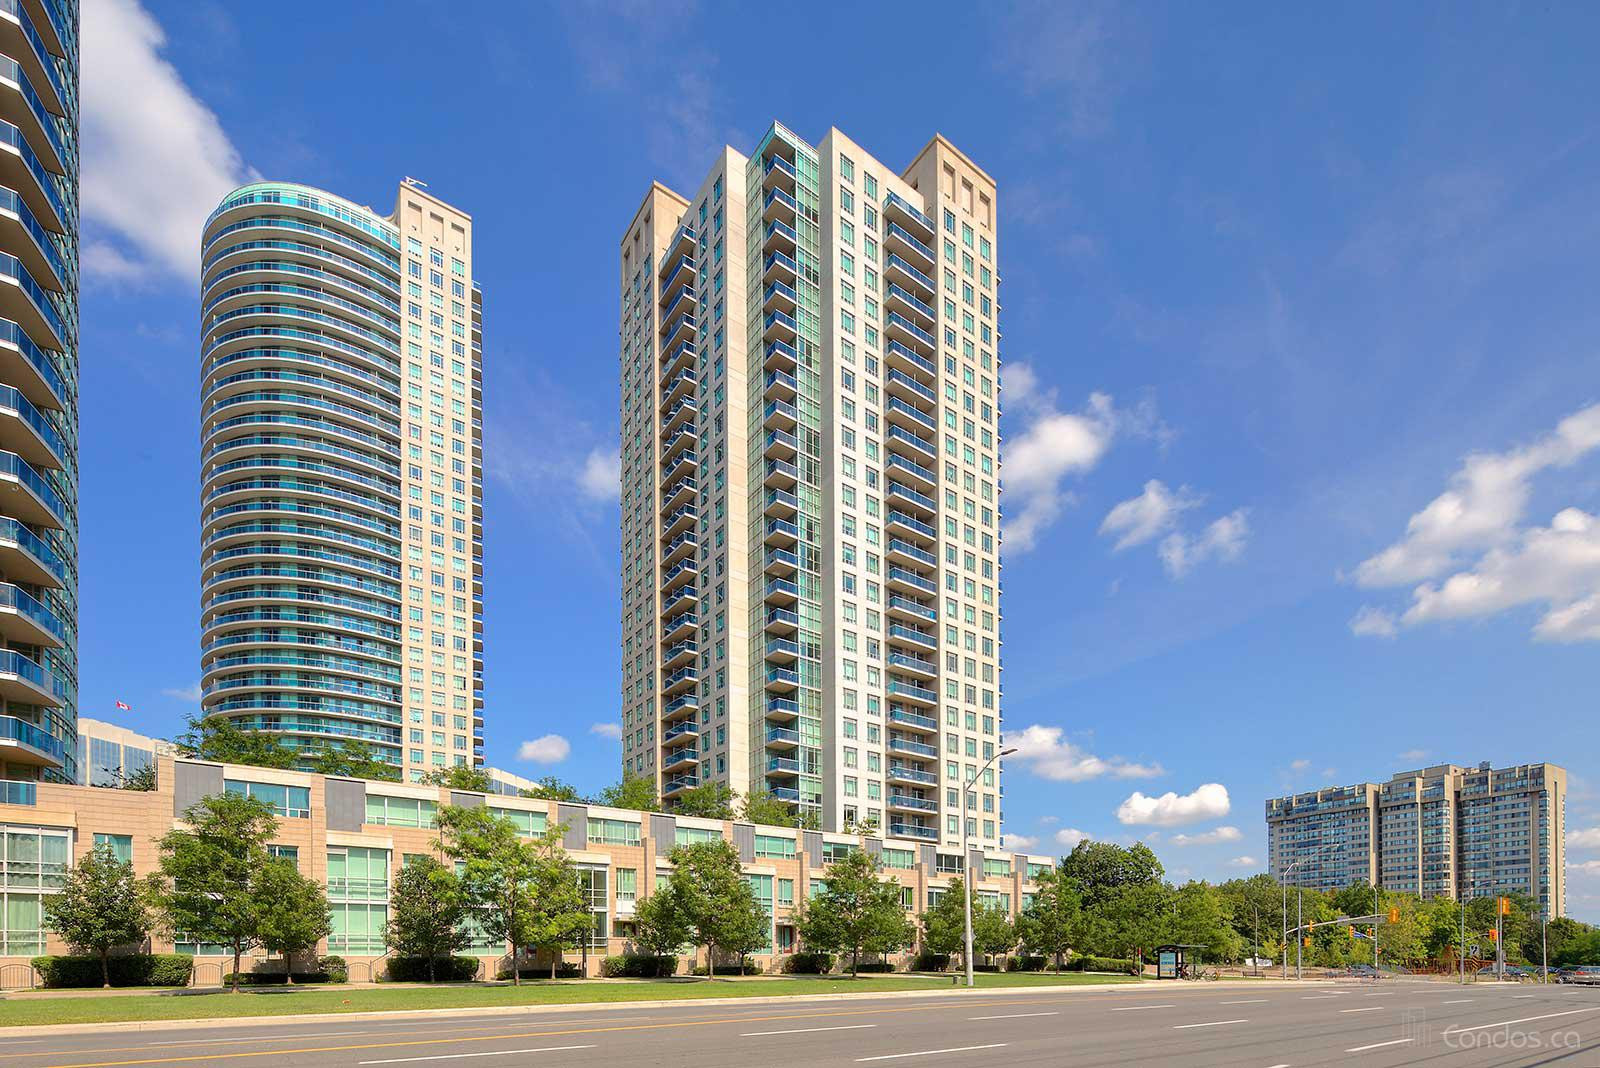 The Absolute at 90 Absolute Ave, Mississauga 1